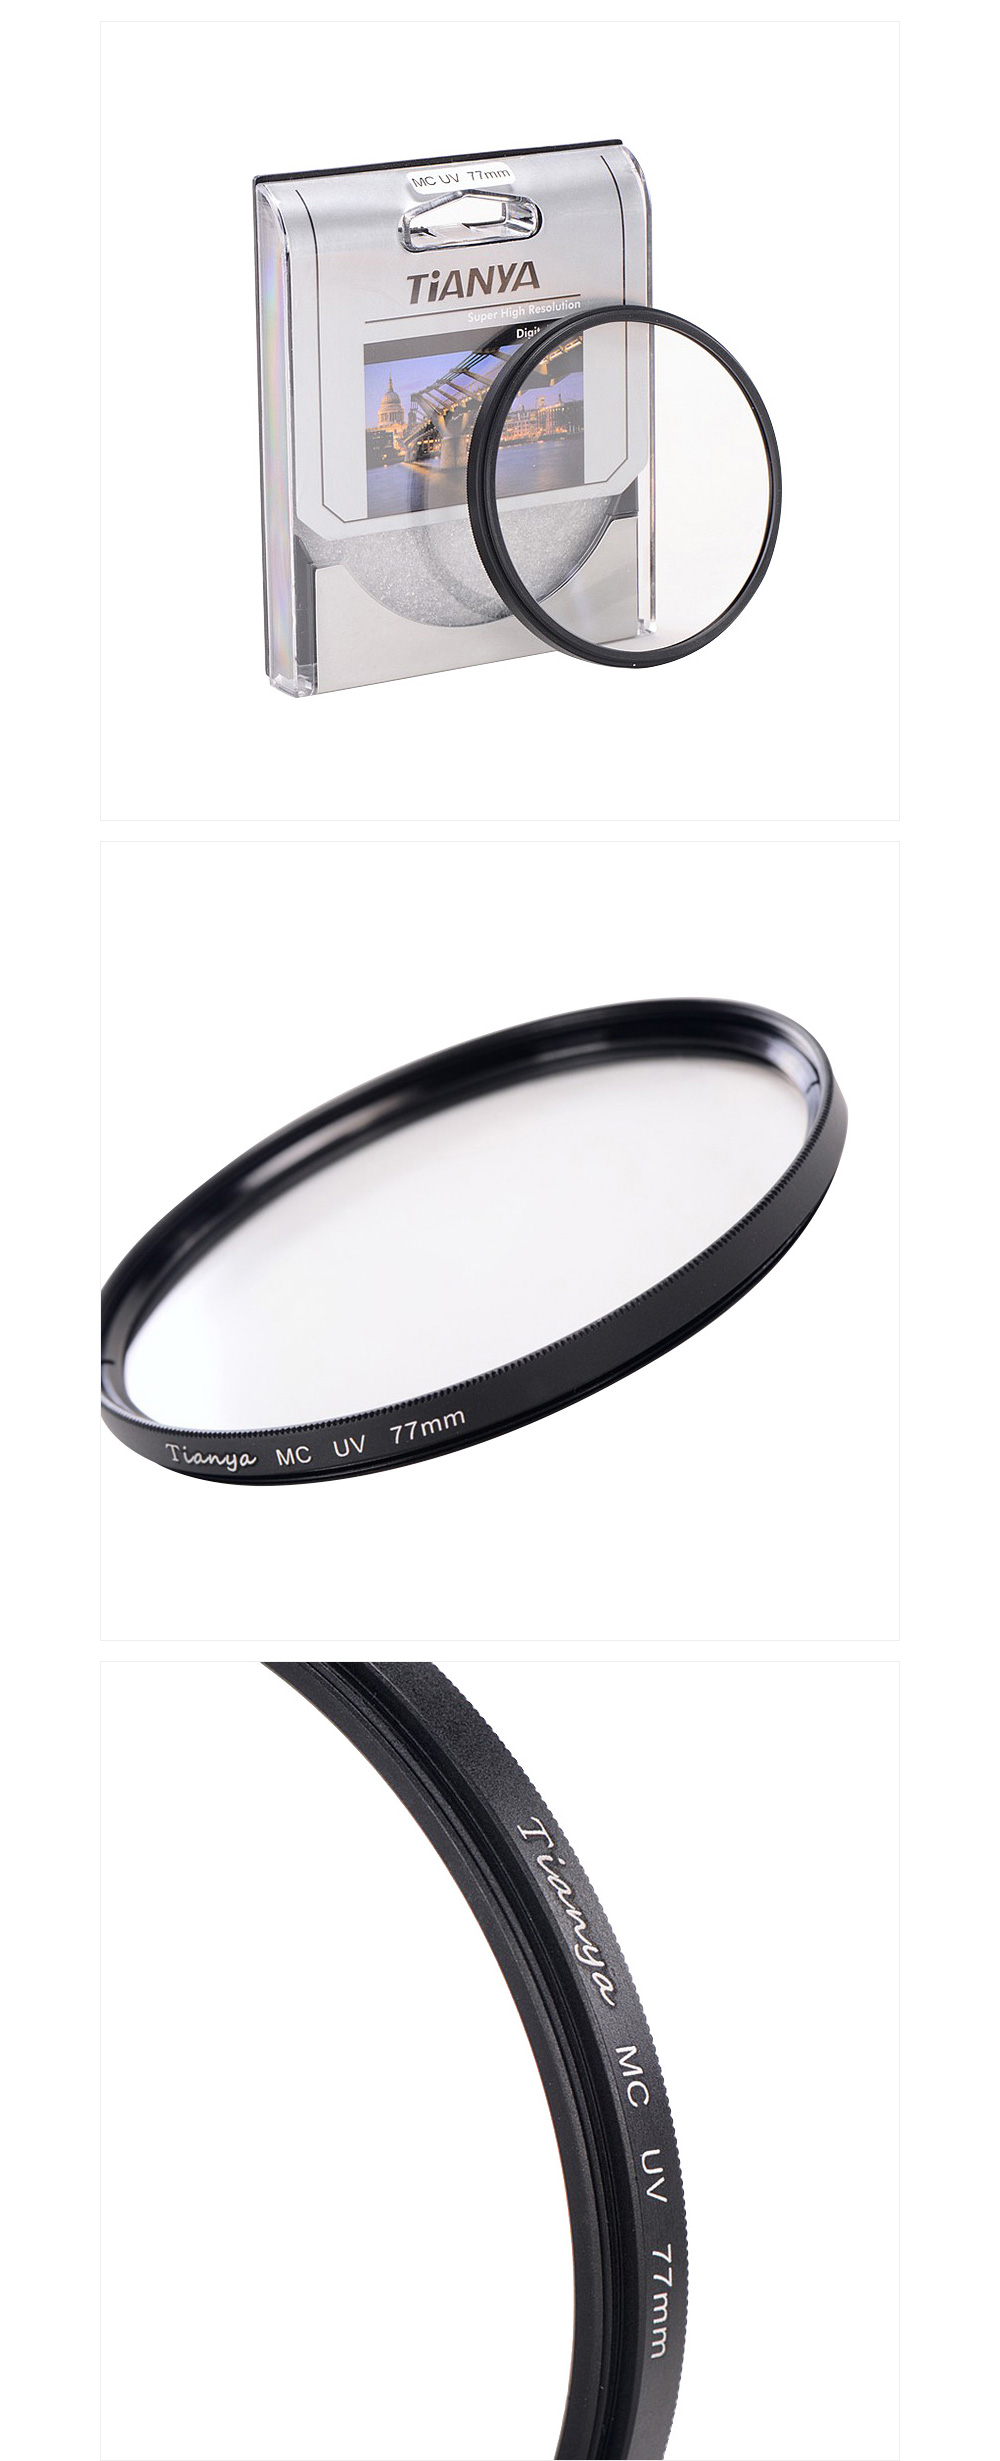 tianya uv filter MCUV filter 37 40.5 43 46 49 52 58 62 67 77 82 86mm mcuv 4-layer coating filters for nikon canon camera lens 2